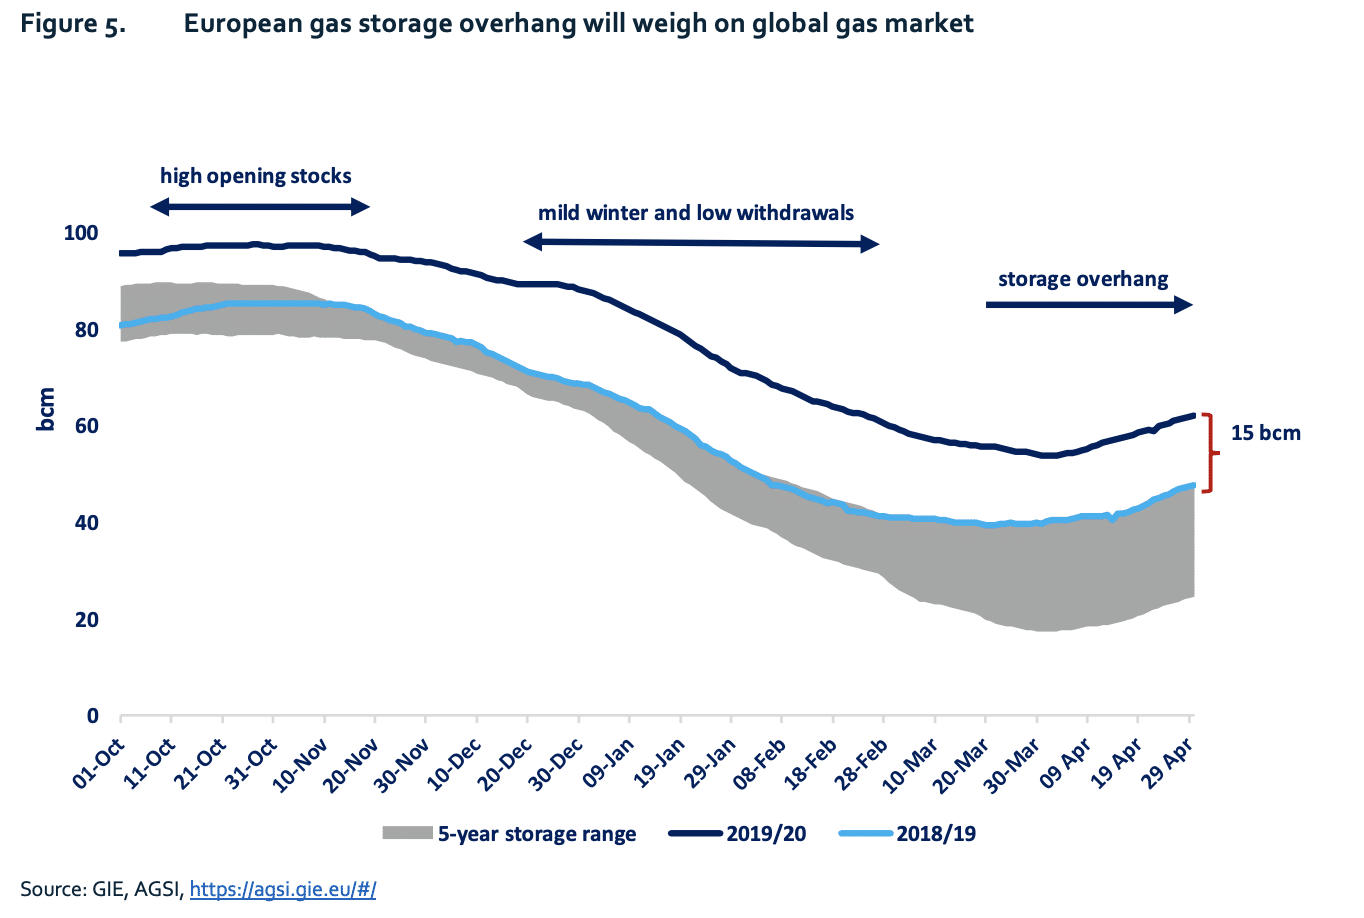 Figure 5. European gas storage overhang will weigh on global gas market